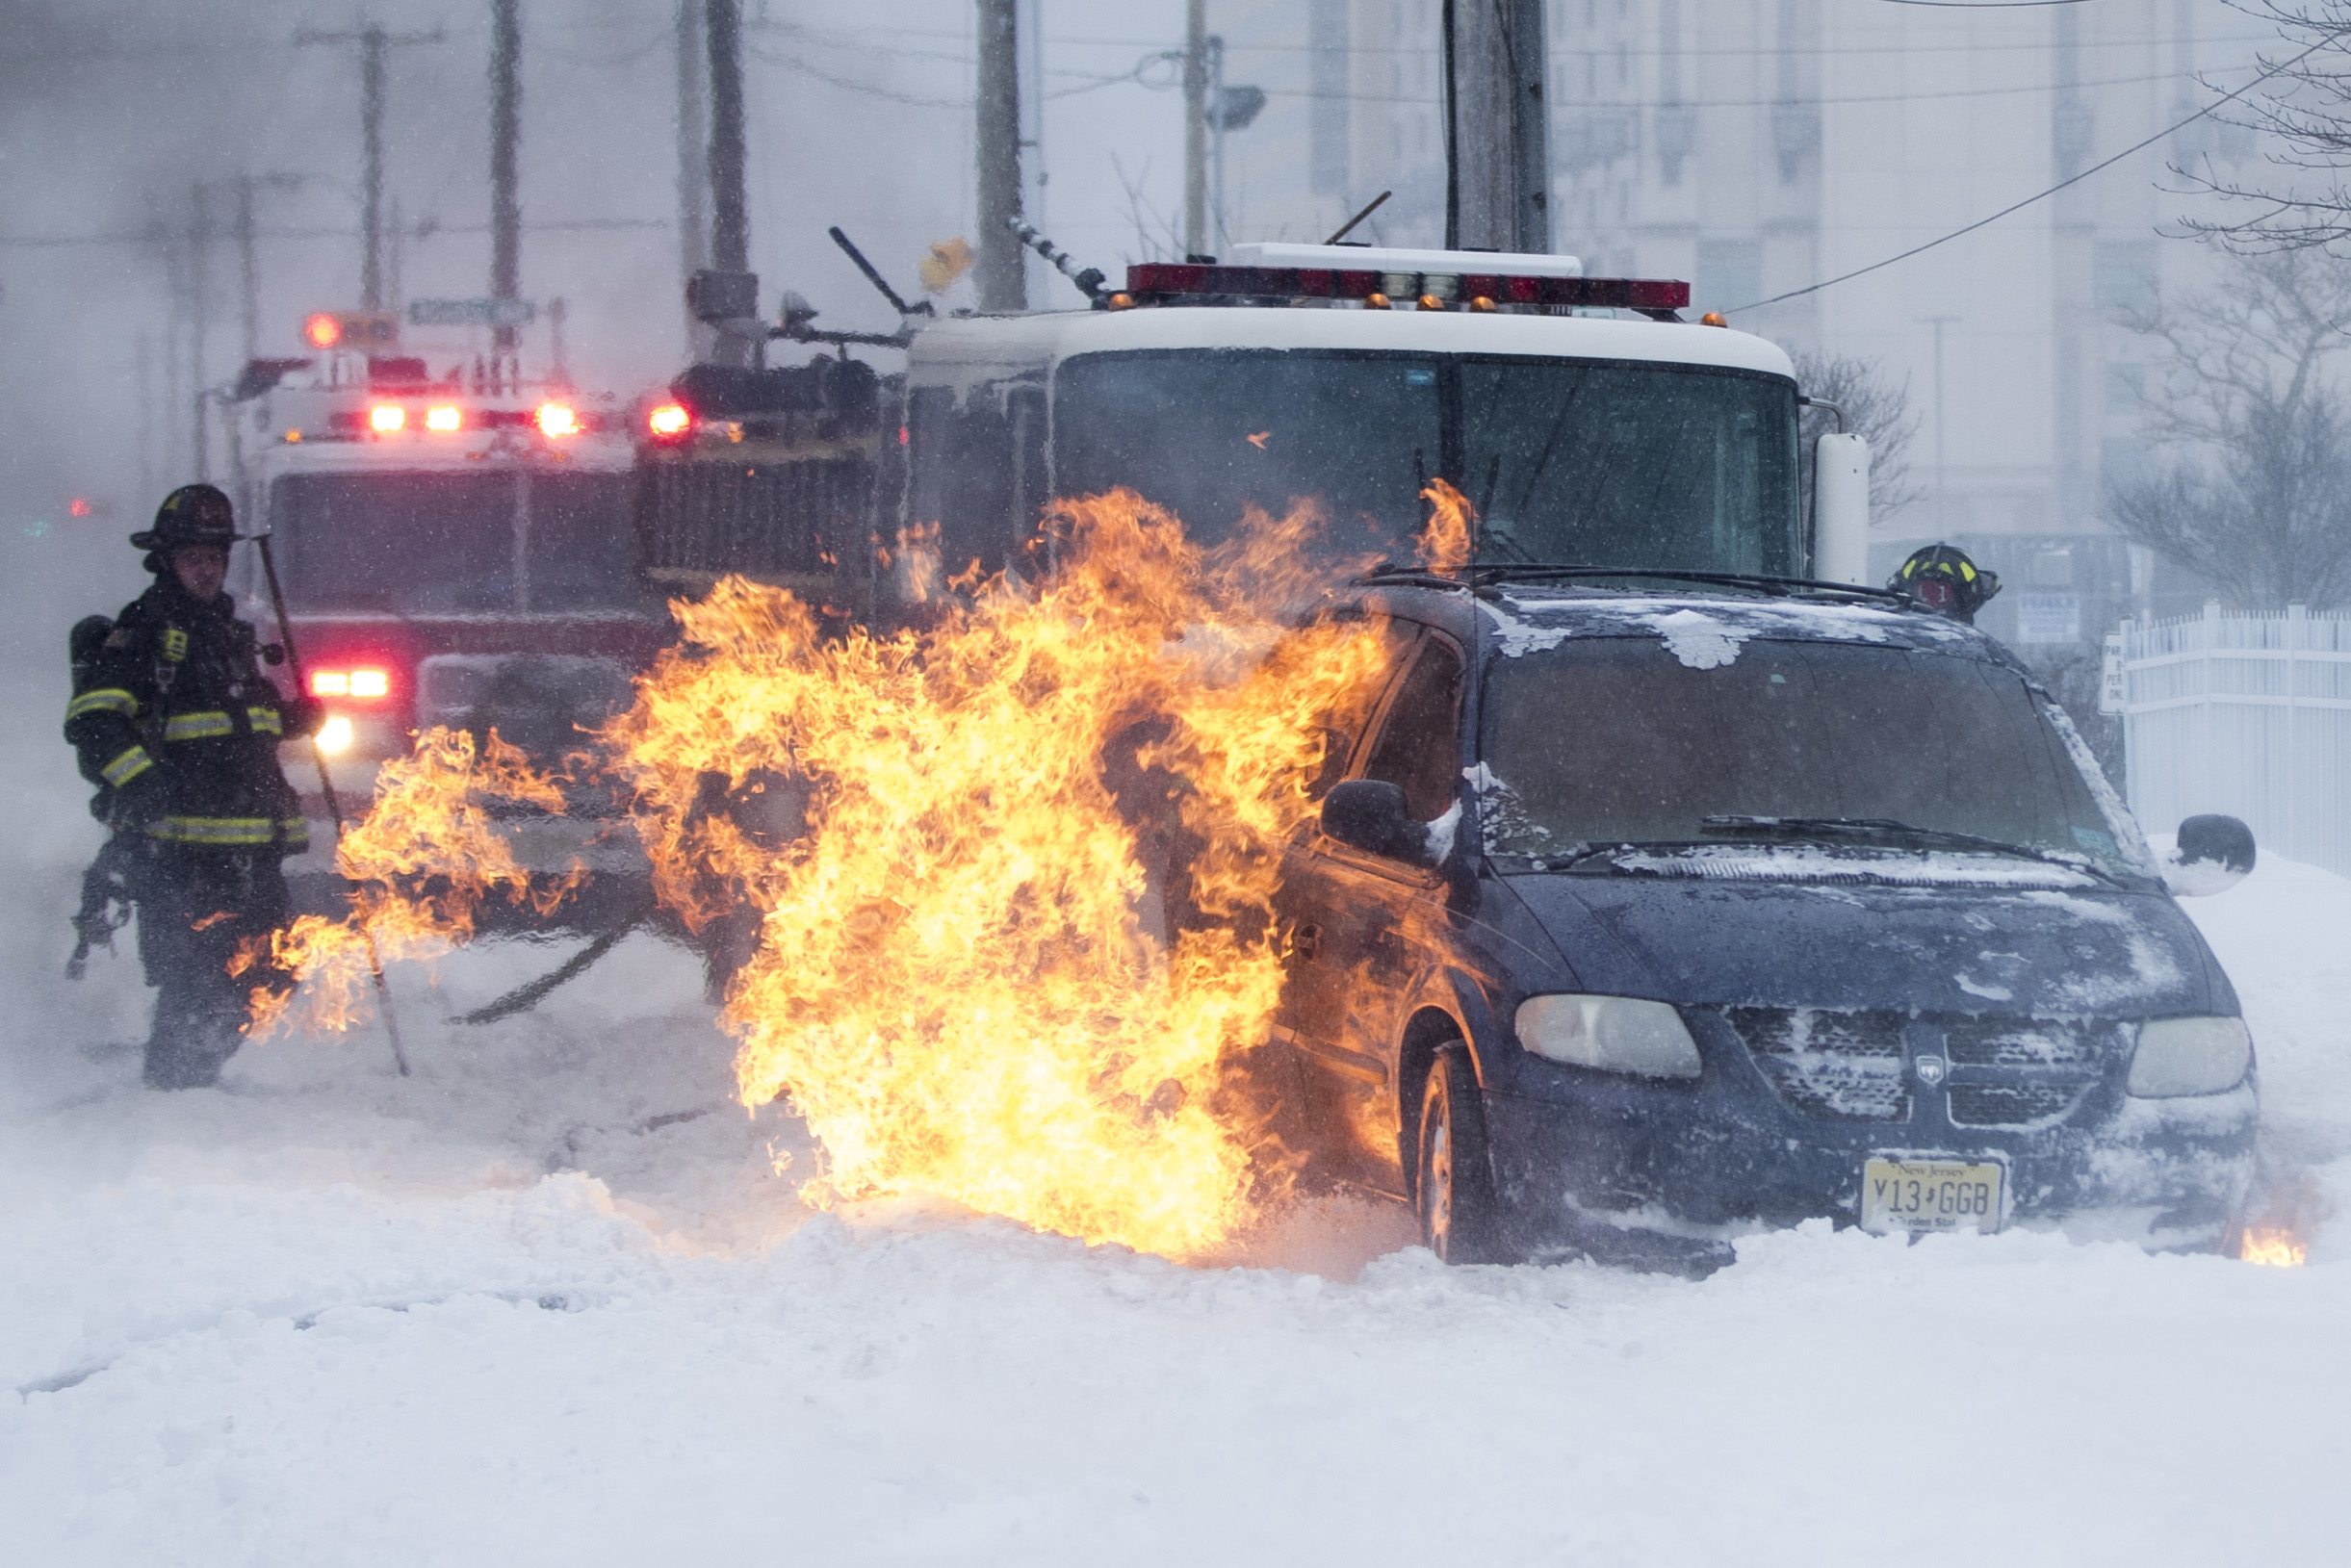 "<div class=""meta image-caption""><div class=""origin-logo origin-image none""><span>none</span></div><span class=""caption-text"">Firefighters extinguish a vehicle fire during a winter snowstorm in Atlantic City, N.J., Thursday, Jan. 4, 2018. (AP Photo/Matt Rourke) (AP)</span></div>"